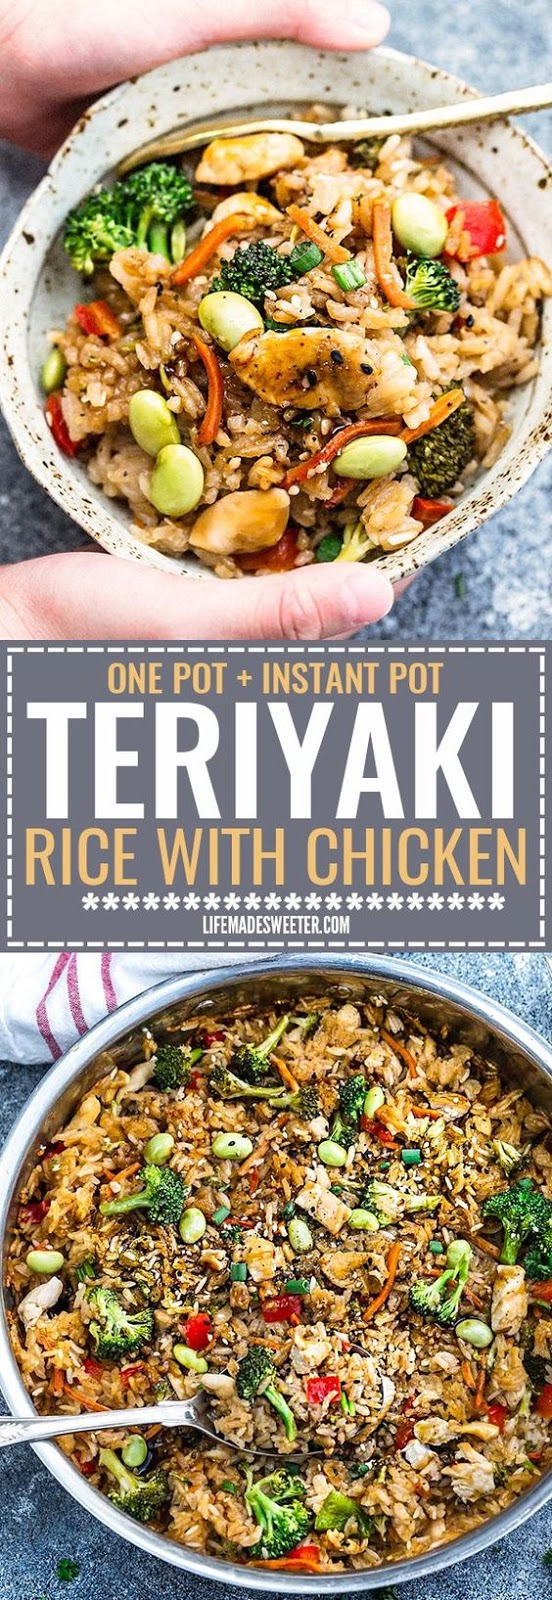 ONE POT TERIYAKI RICE WITH CHICKEN & VEGETABLES